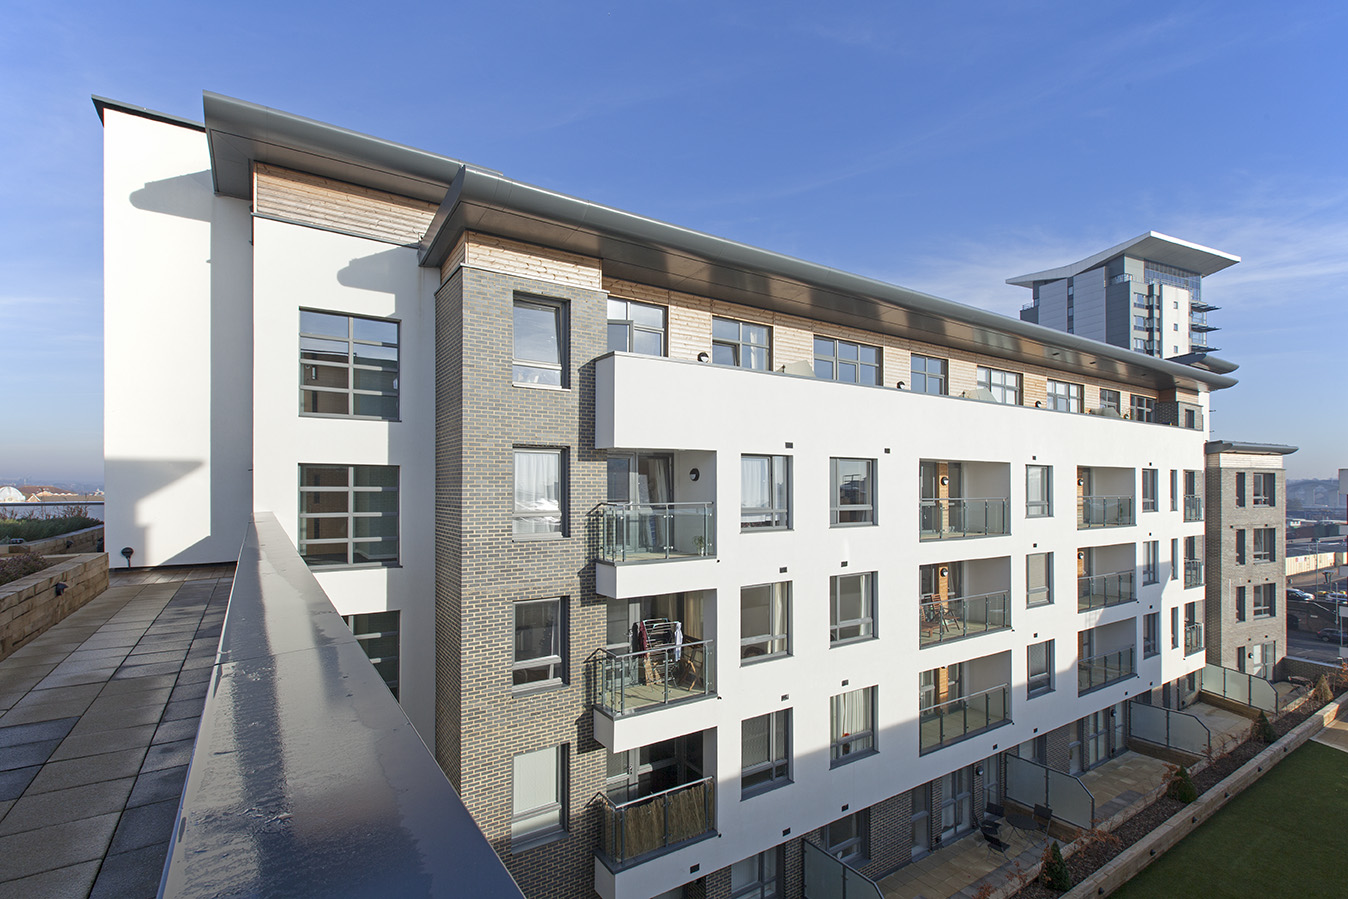 Elliptical Bullnose Aluminium Fascia and Soffit Panels for Housing in Southampton